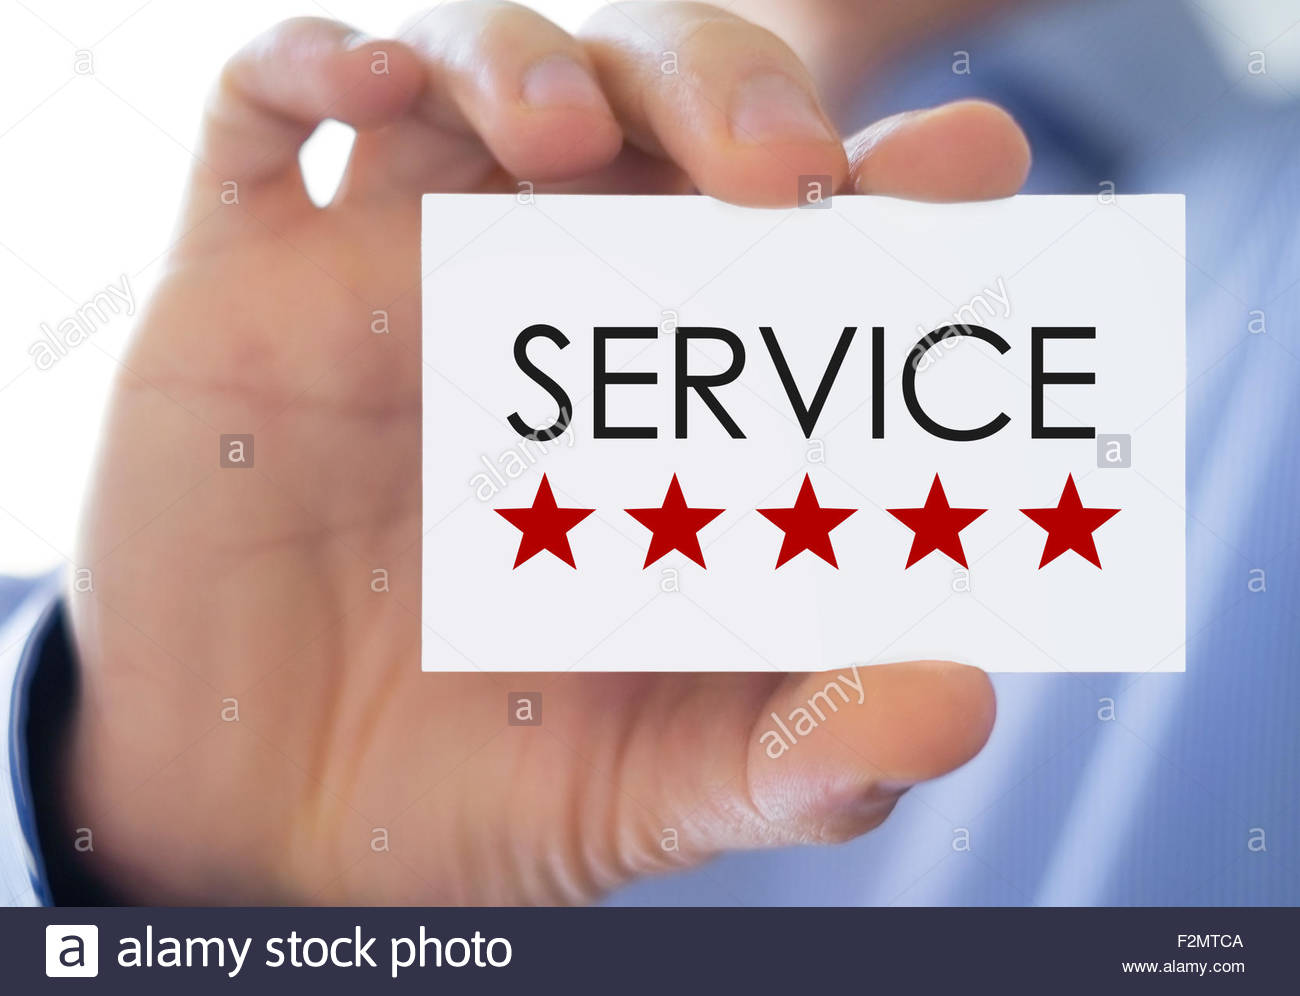 Service - business card - Stock Image